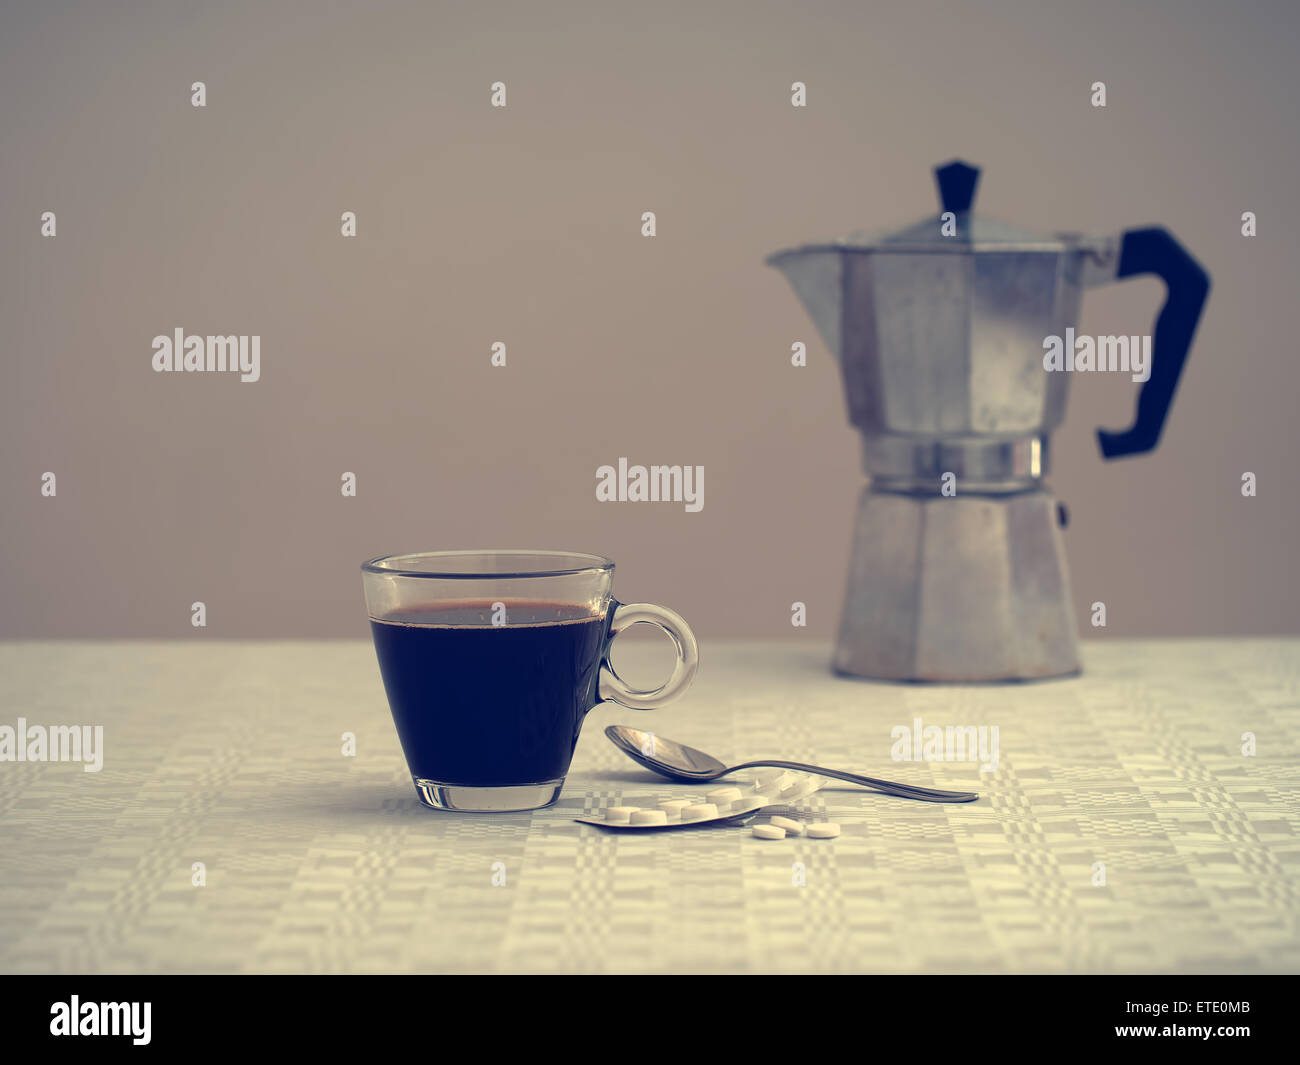 Lonely and ill - healthcare, wellbeing concept. Differential focus - old coffee maker blurry in the background. - Stock Image